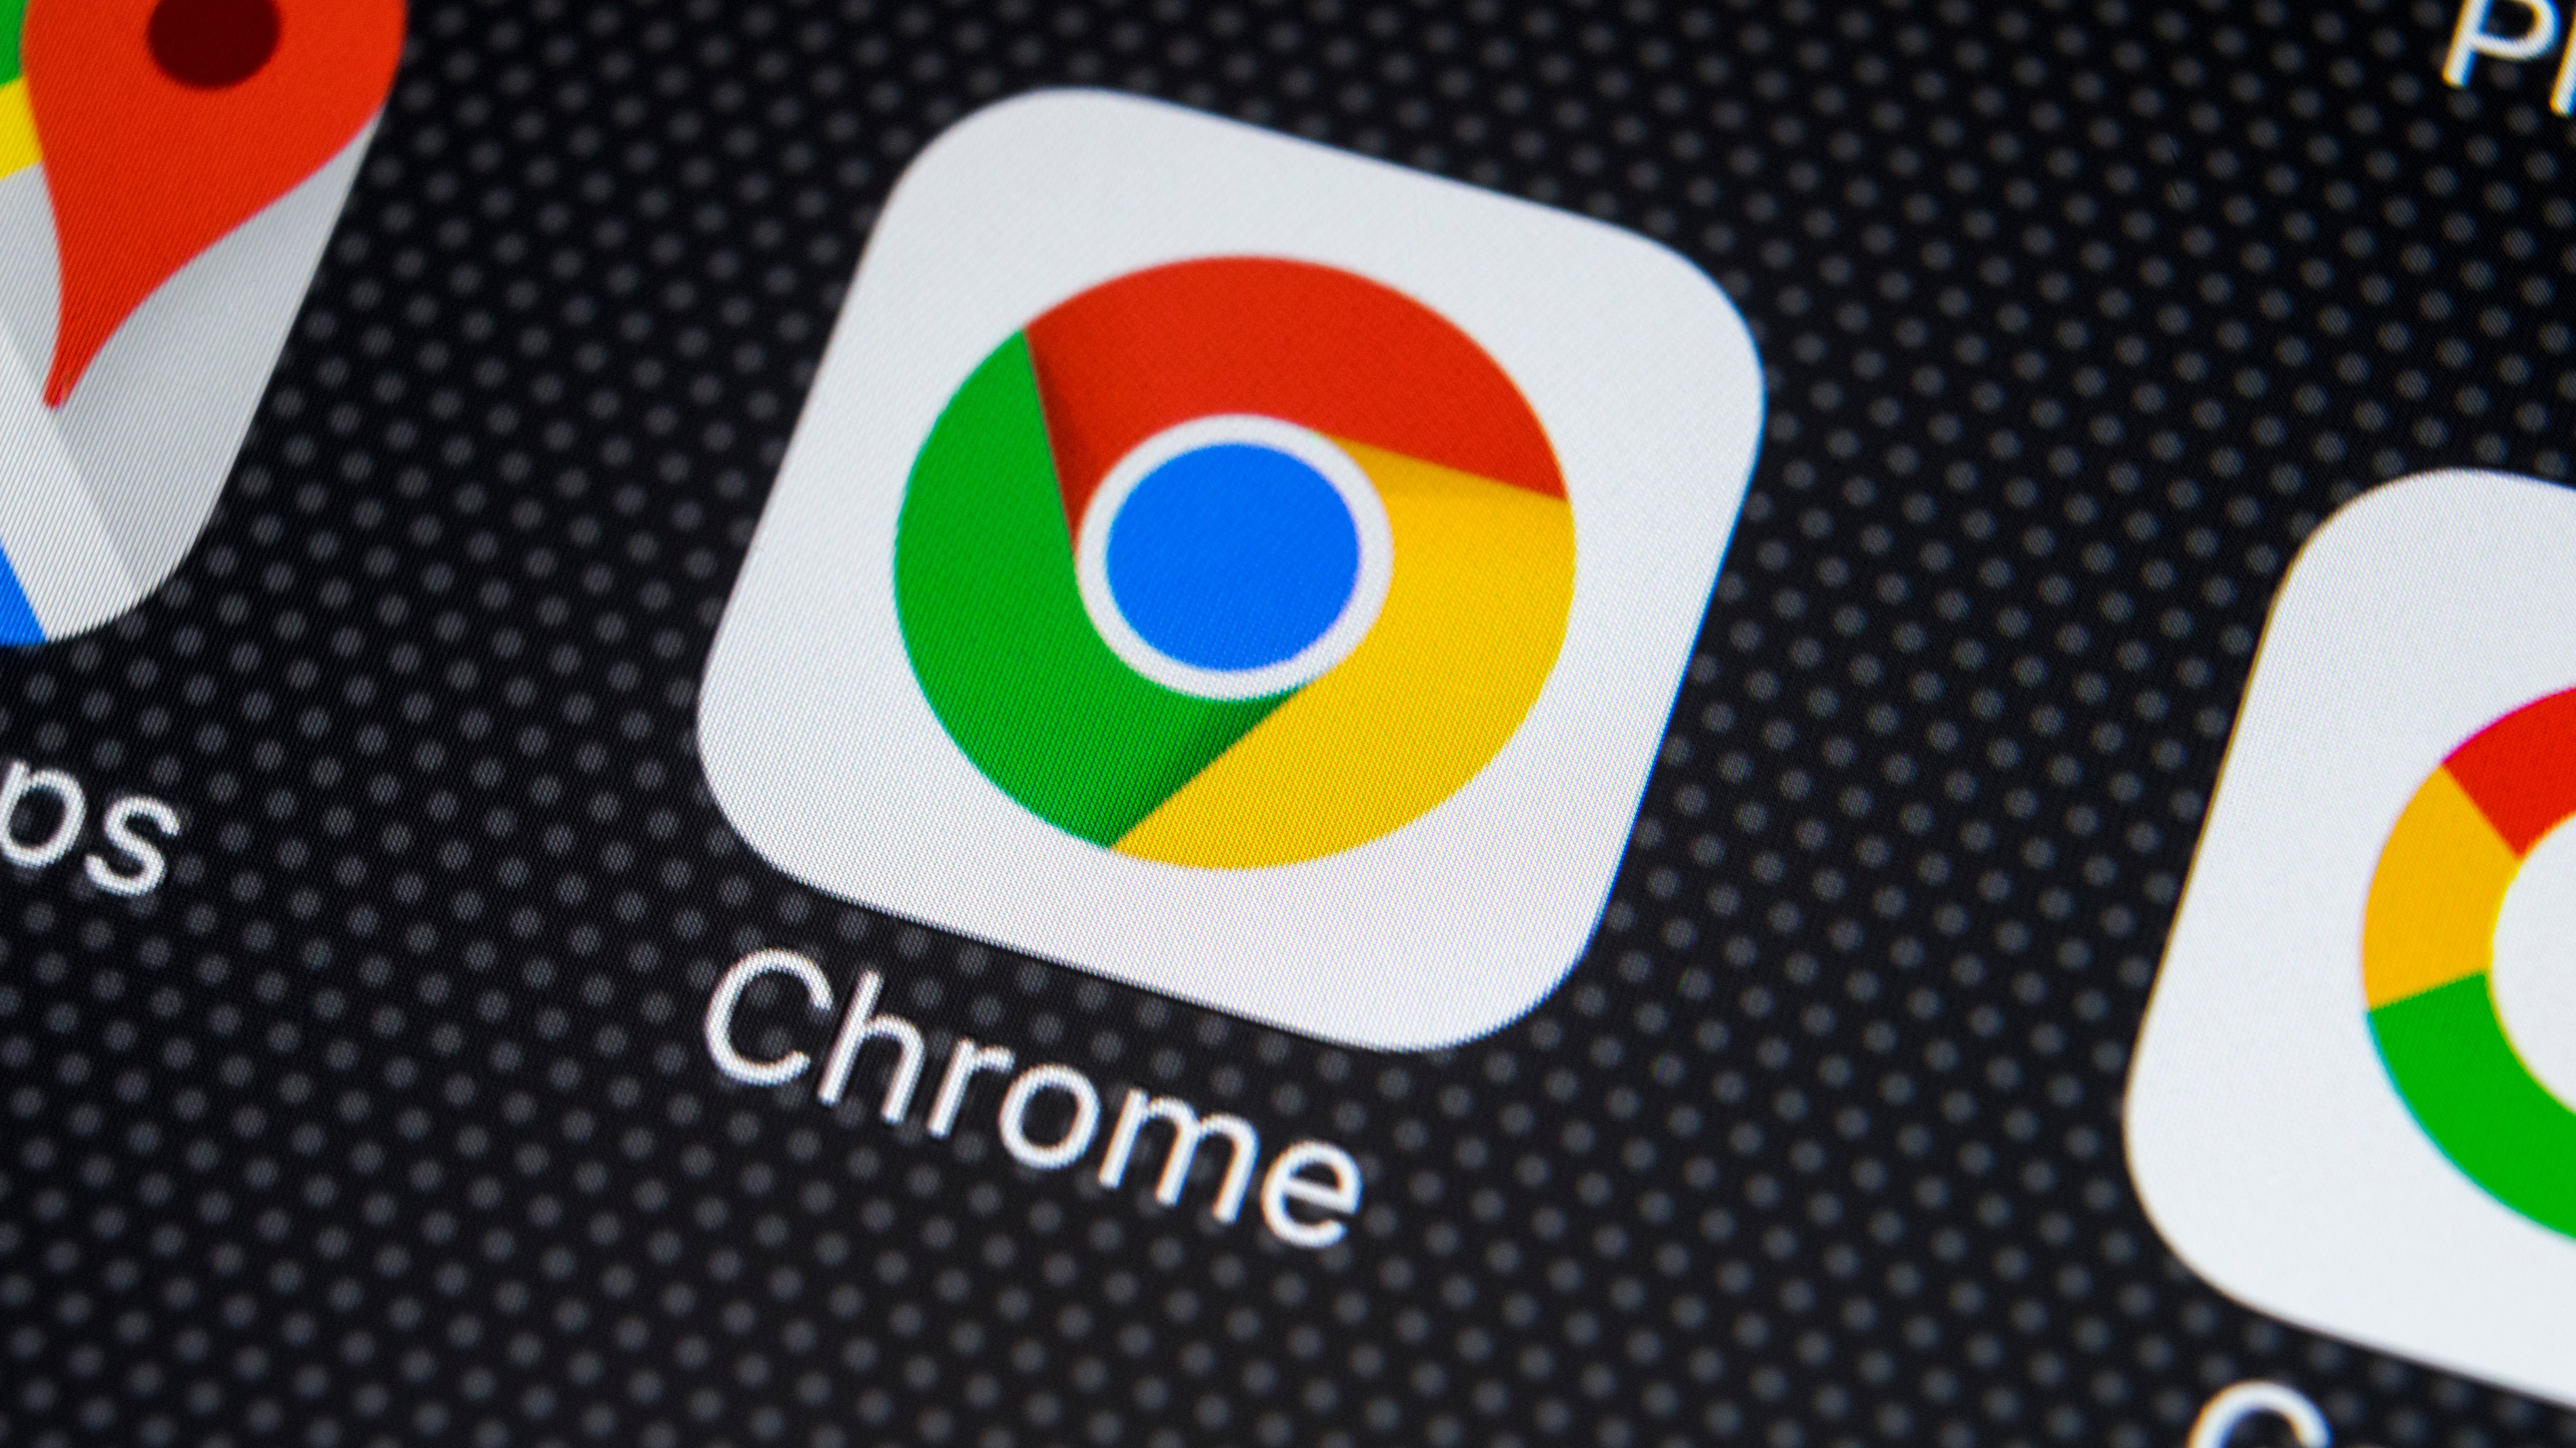 Google will support Chrome on Windows 7 for at least 18 more months